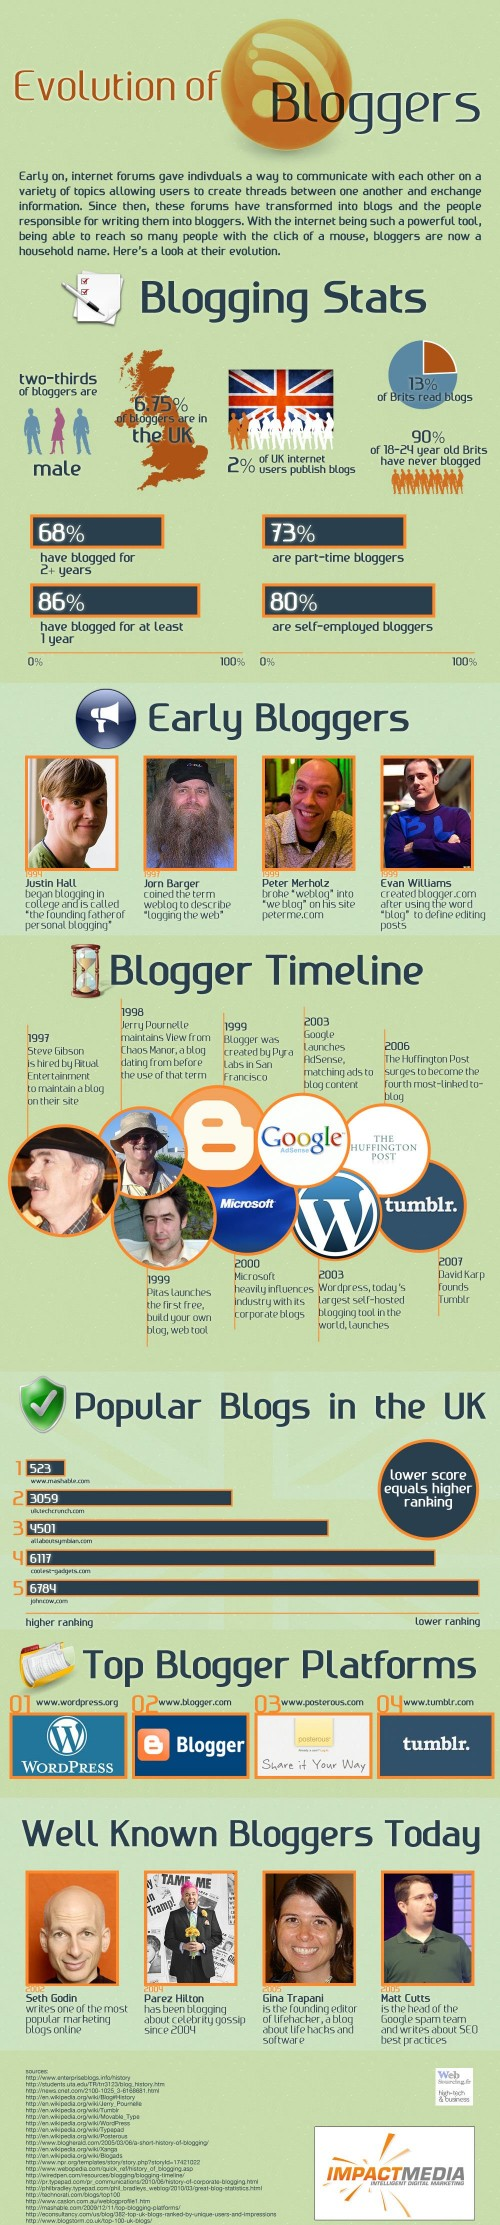 Evolution of Bloggers